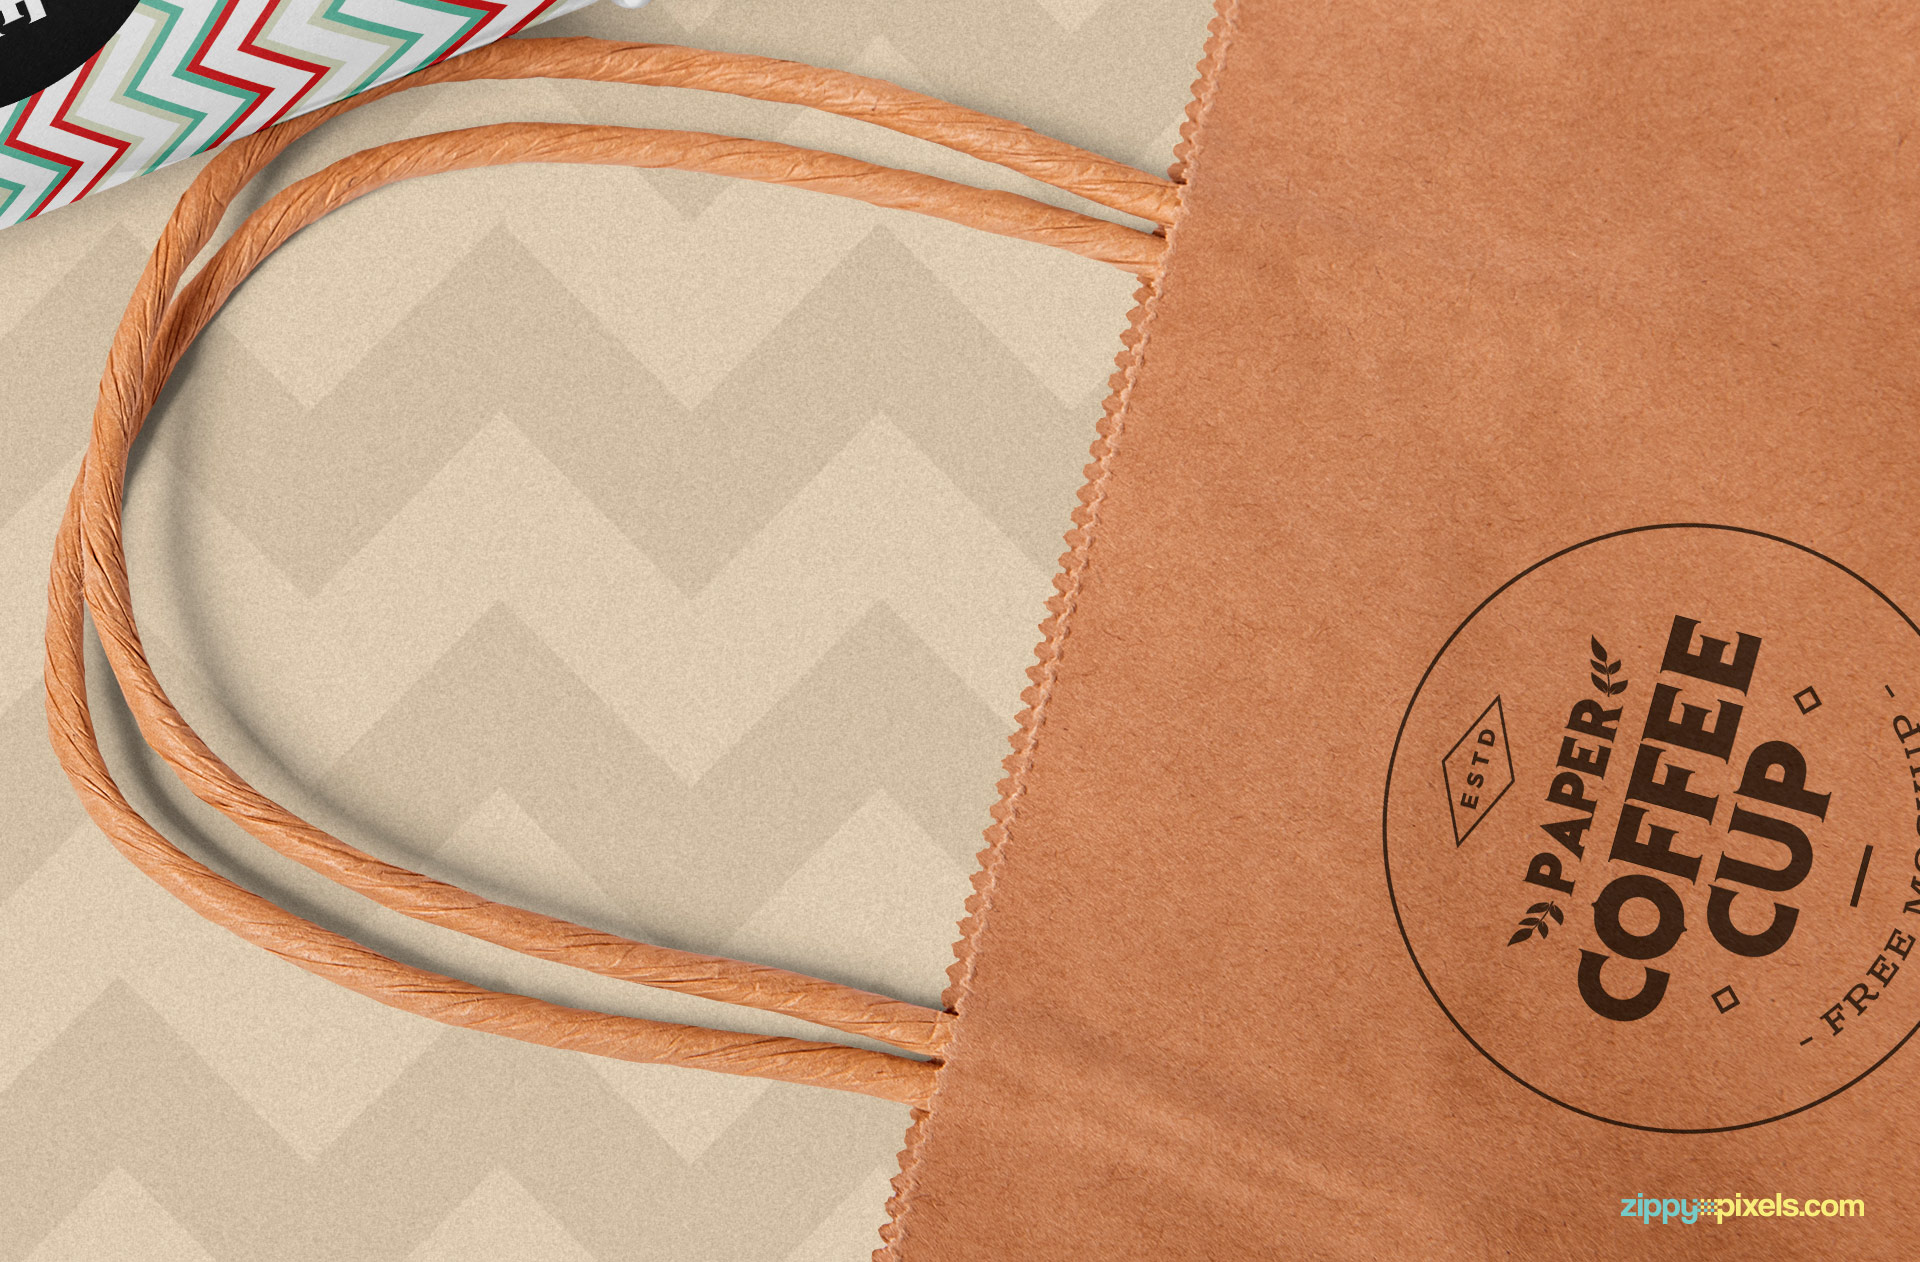 Add your designs in this shopping bag mockup.